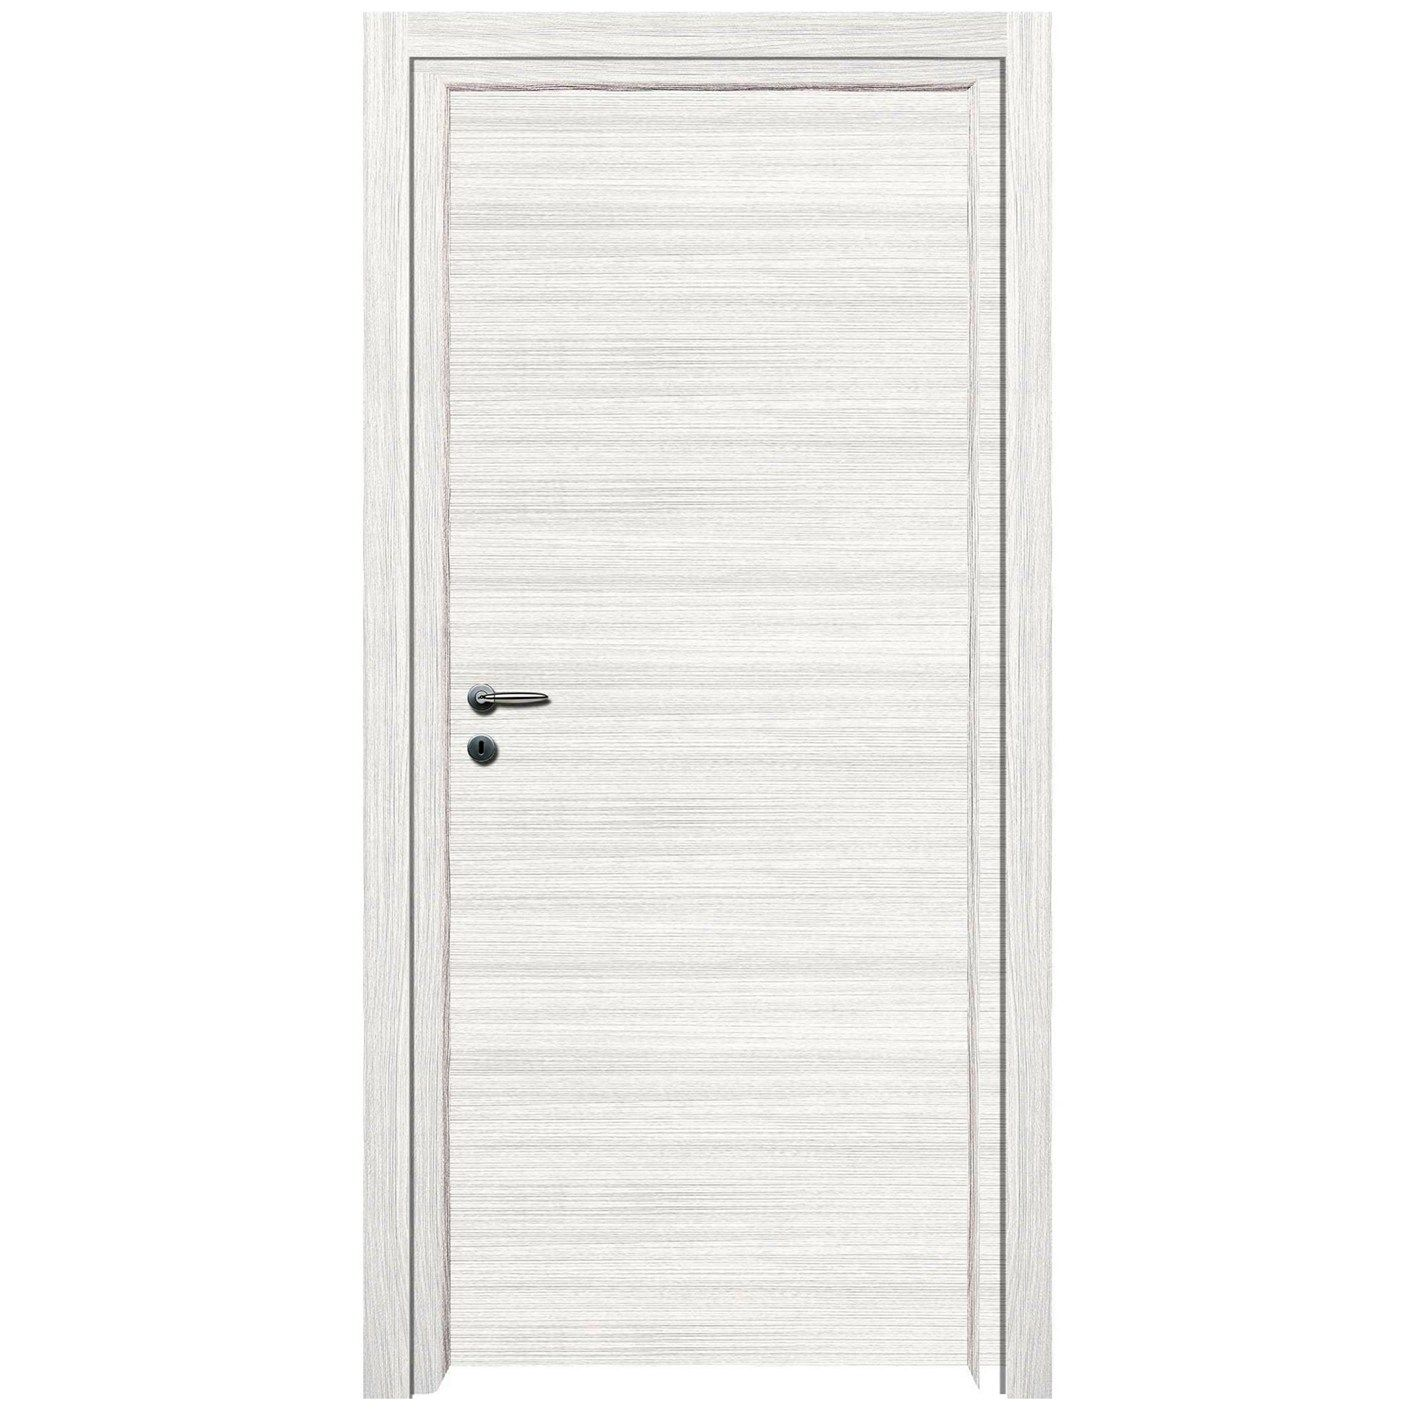 Nusco porte presenta rever light - Nusco porte nola ...